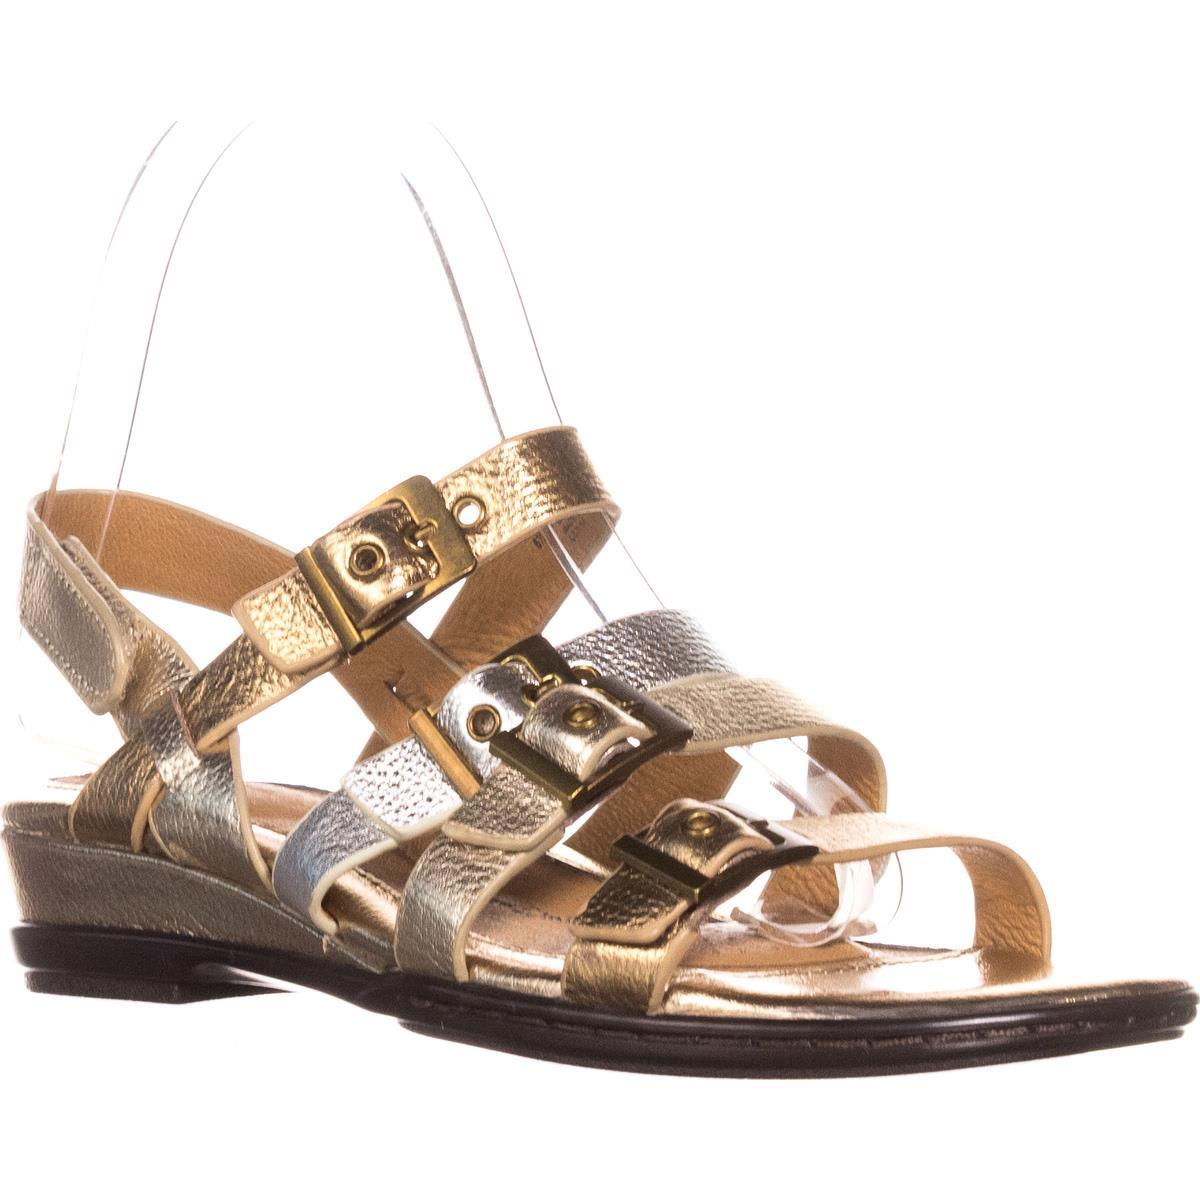 Womens Sofft Sapphire Buckle Strapped Slingback Sandals, Metallic Multi by Sofft